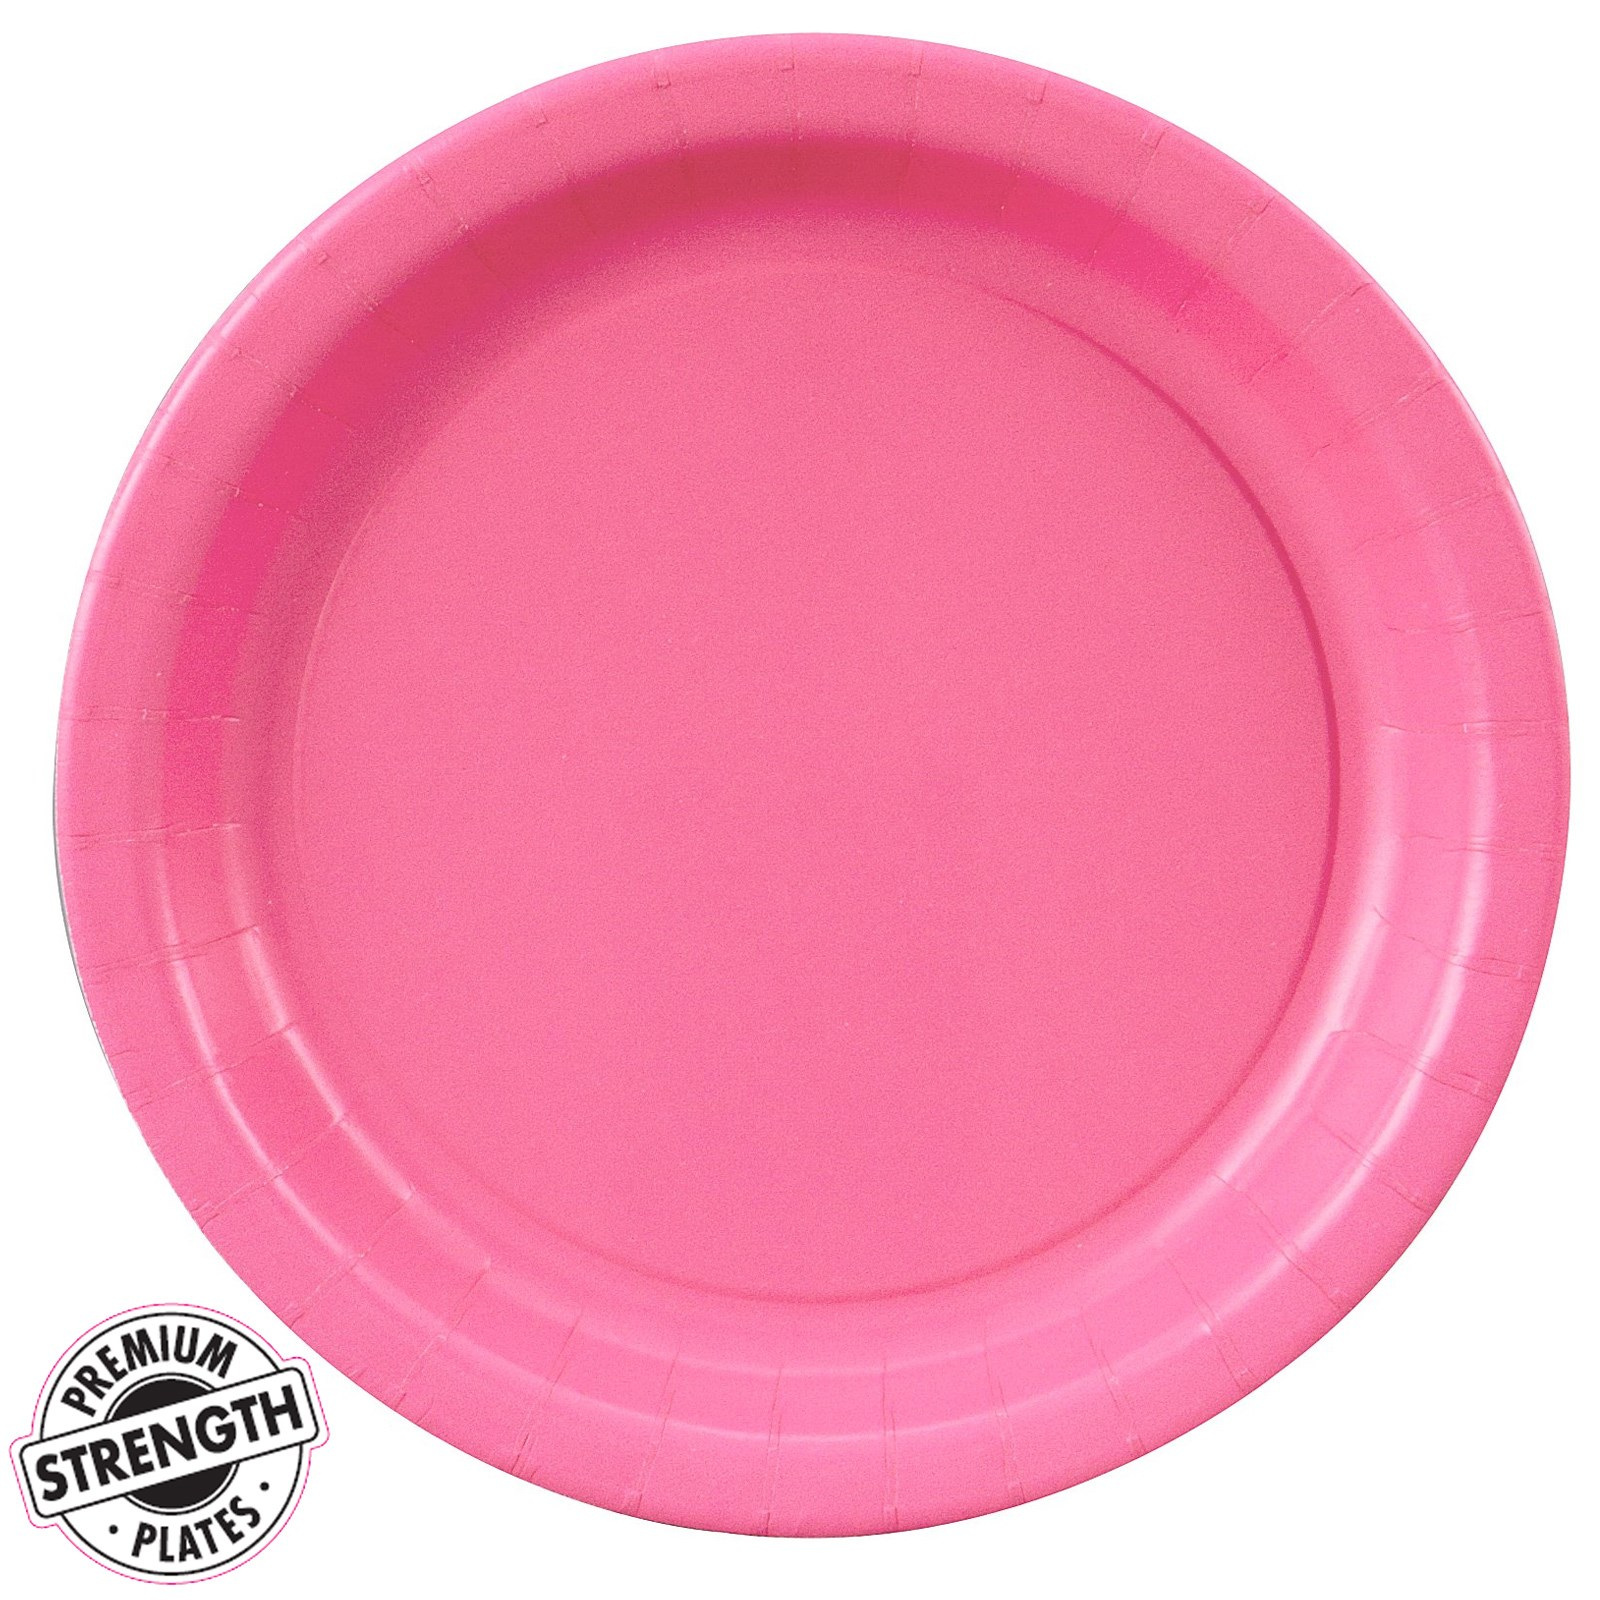 candy pink hot pink dessert plates 24 count. Black Bedroom Furniture Sets. Home Design Ideas